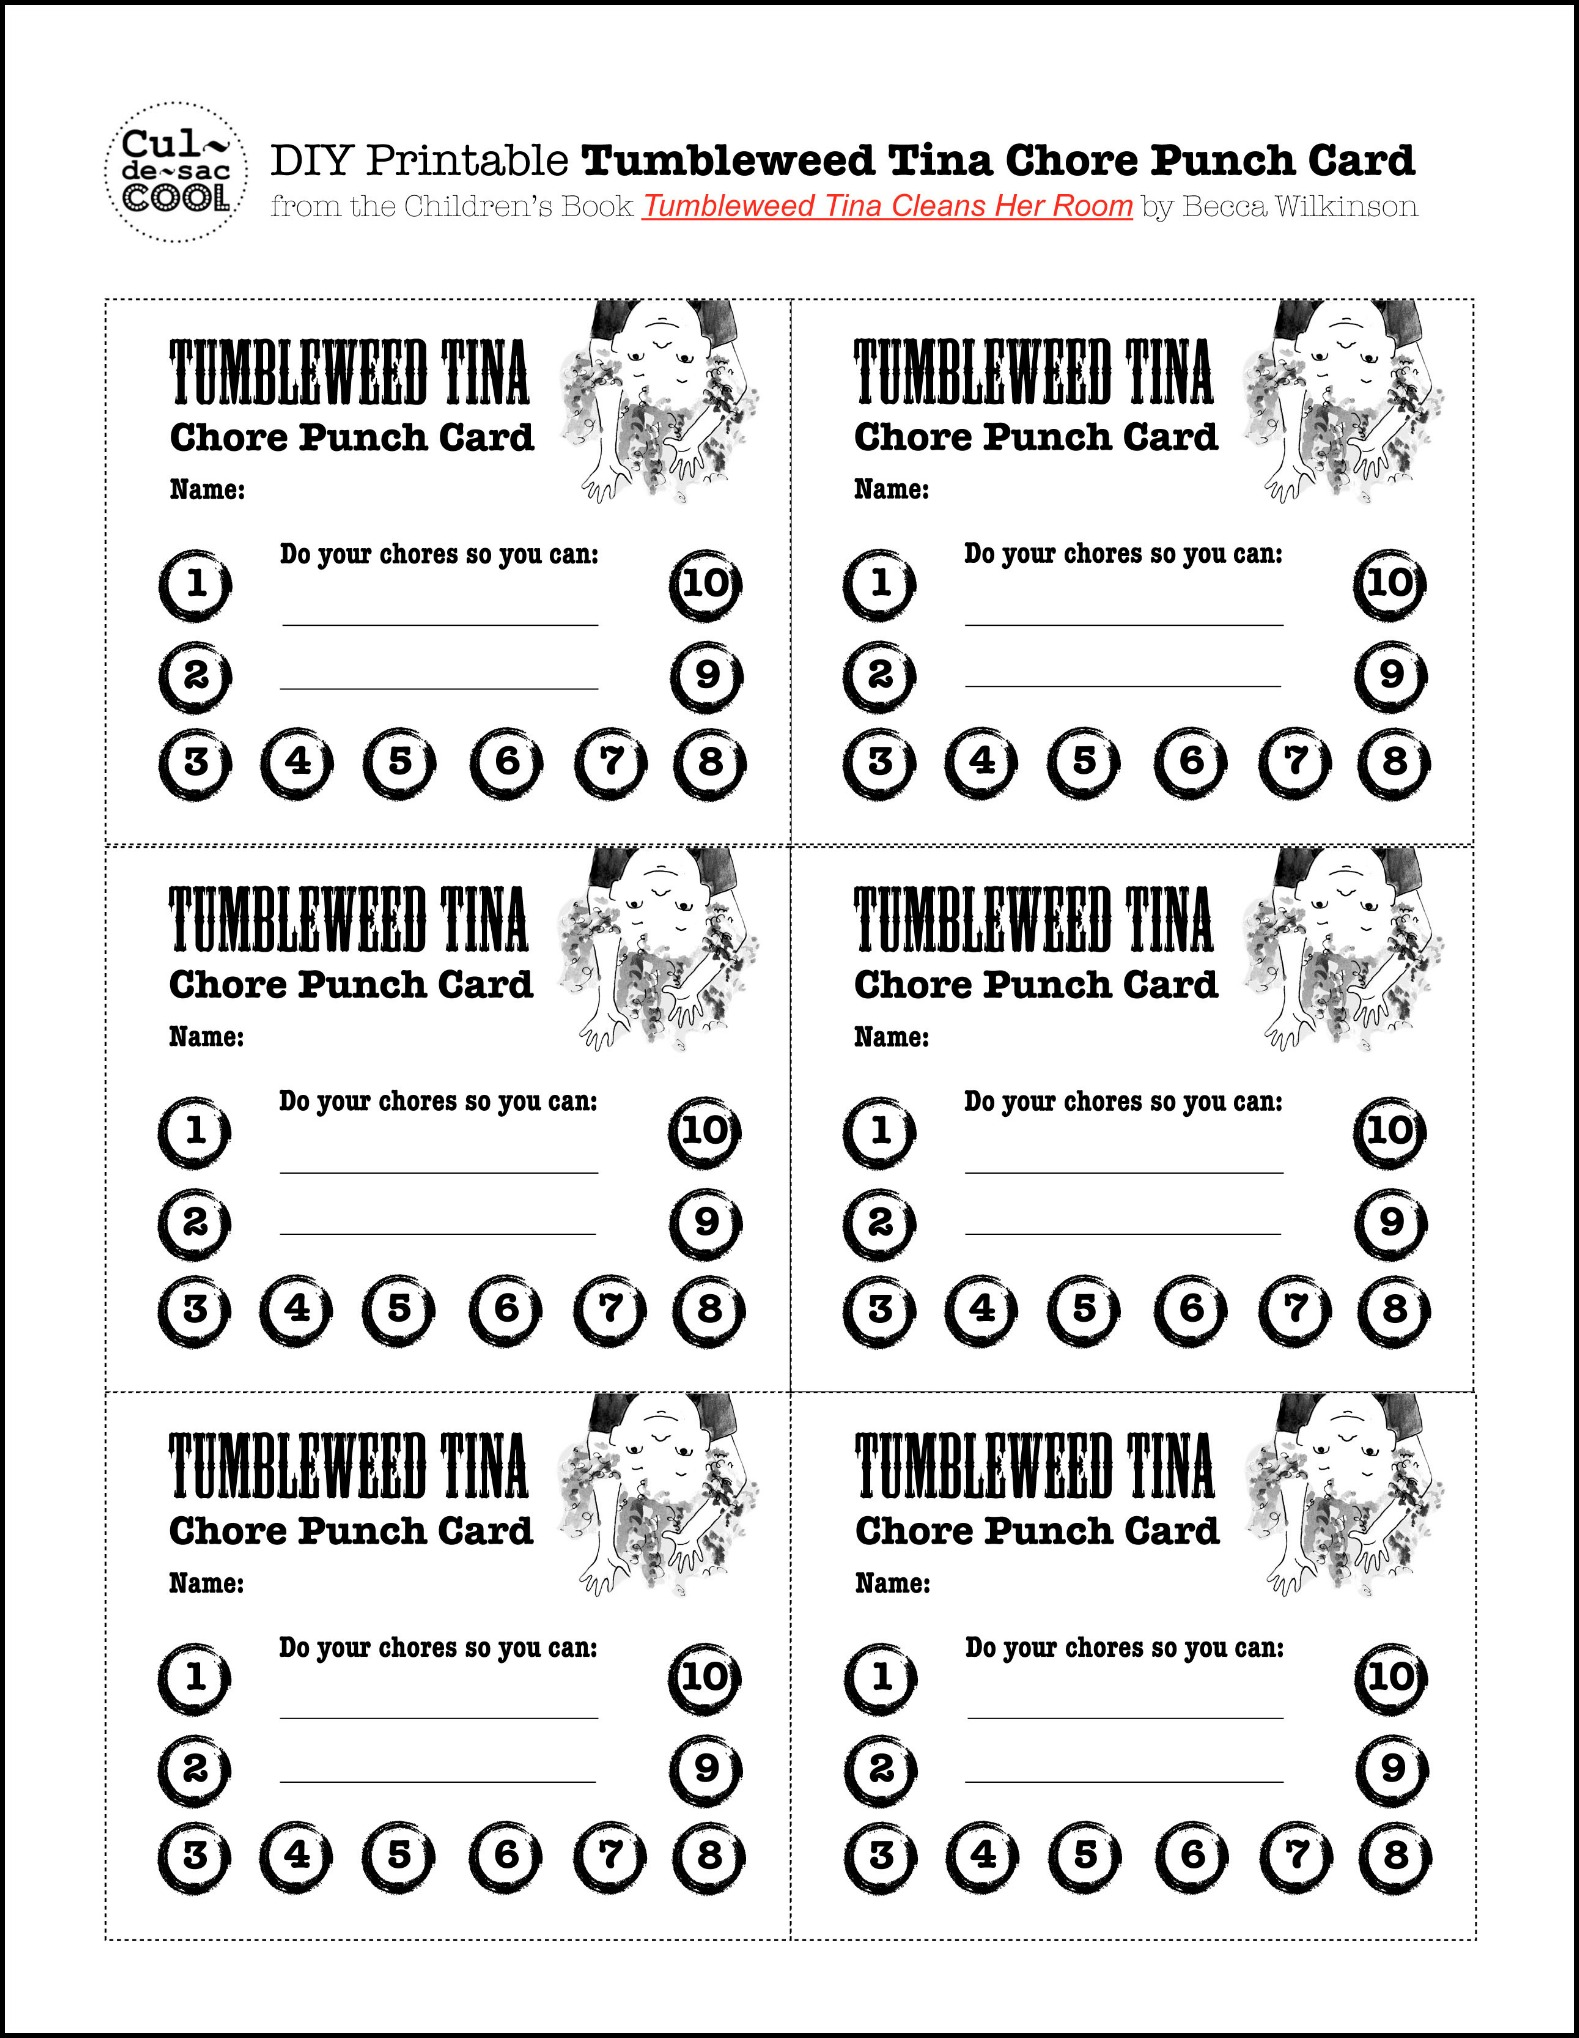 Diy Printable Tumbleweed Tina Chore Punch Card on free printable movie ticket templates